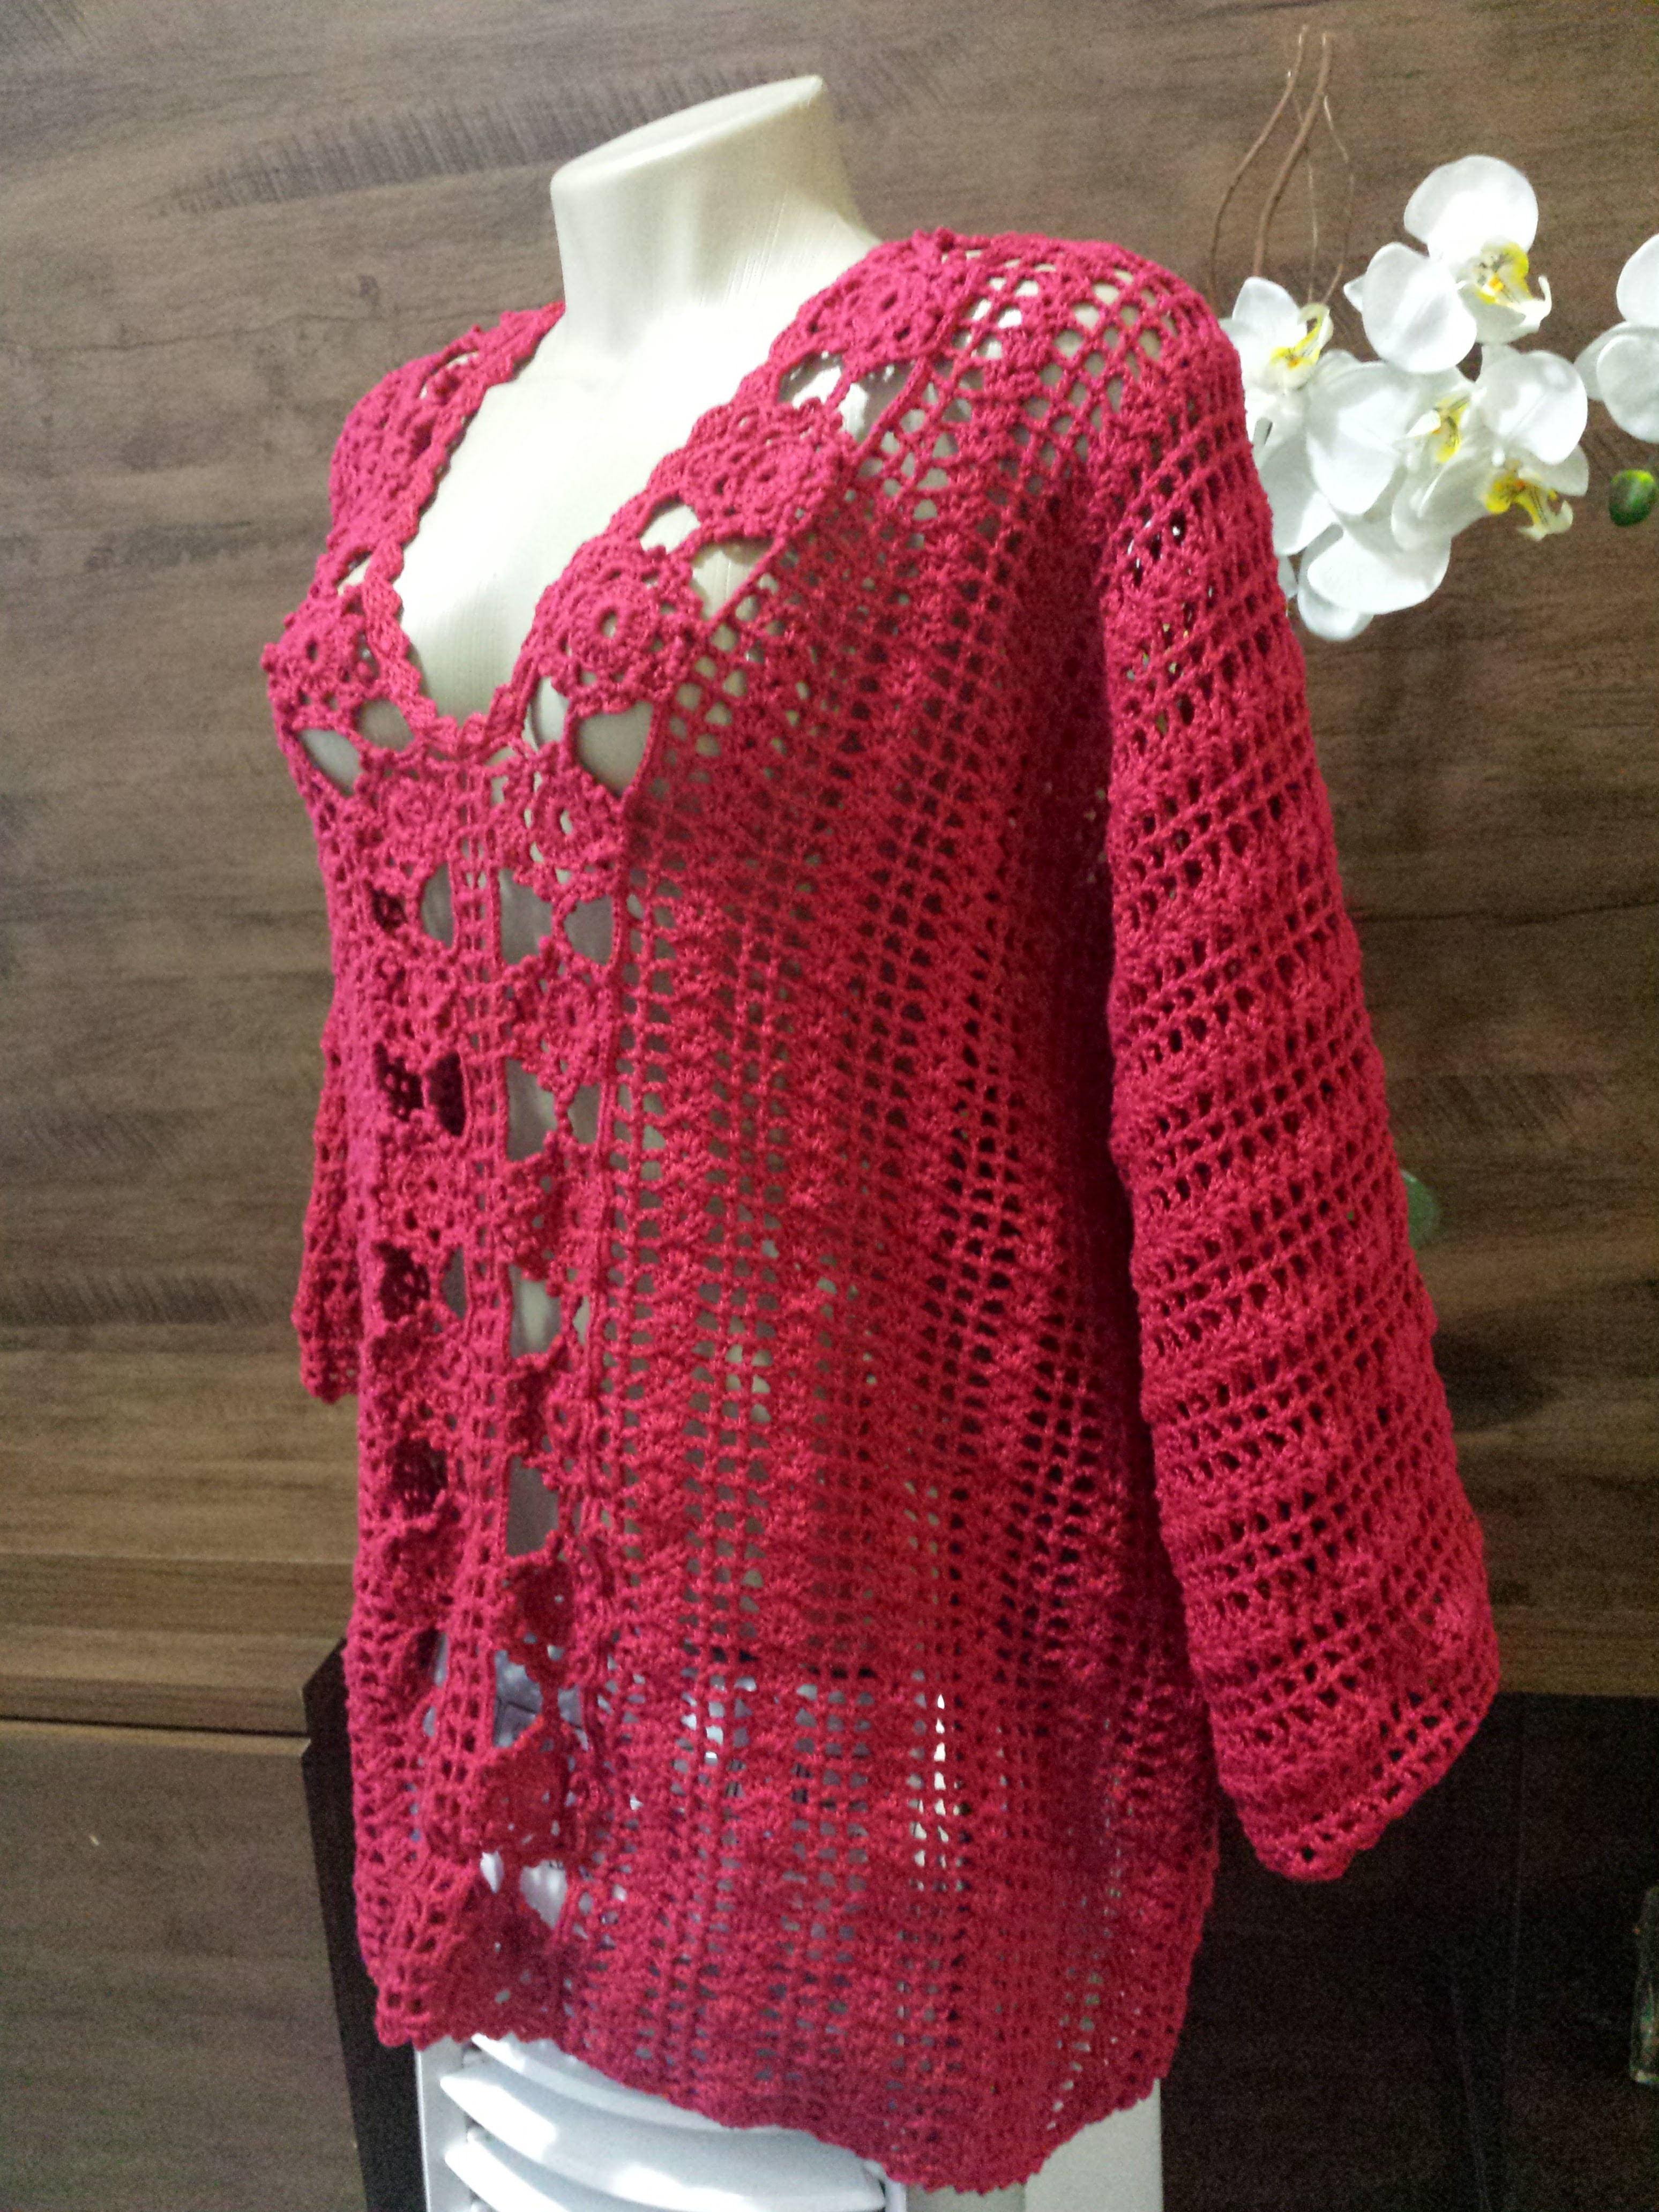 6533656582de76 BLUSA MANGA MORCEGO no Elo7 | Knit and Crochet by Sissy Monturil (848FE8)